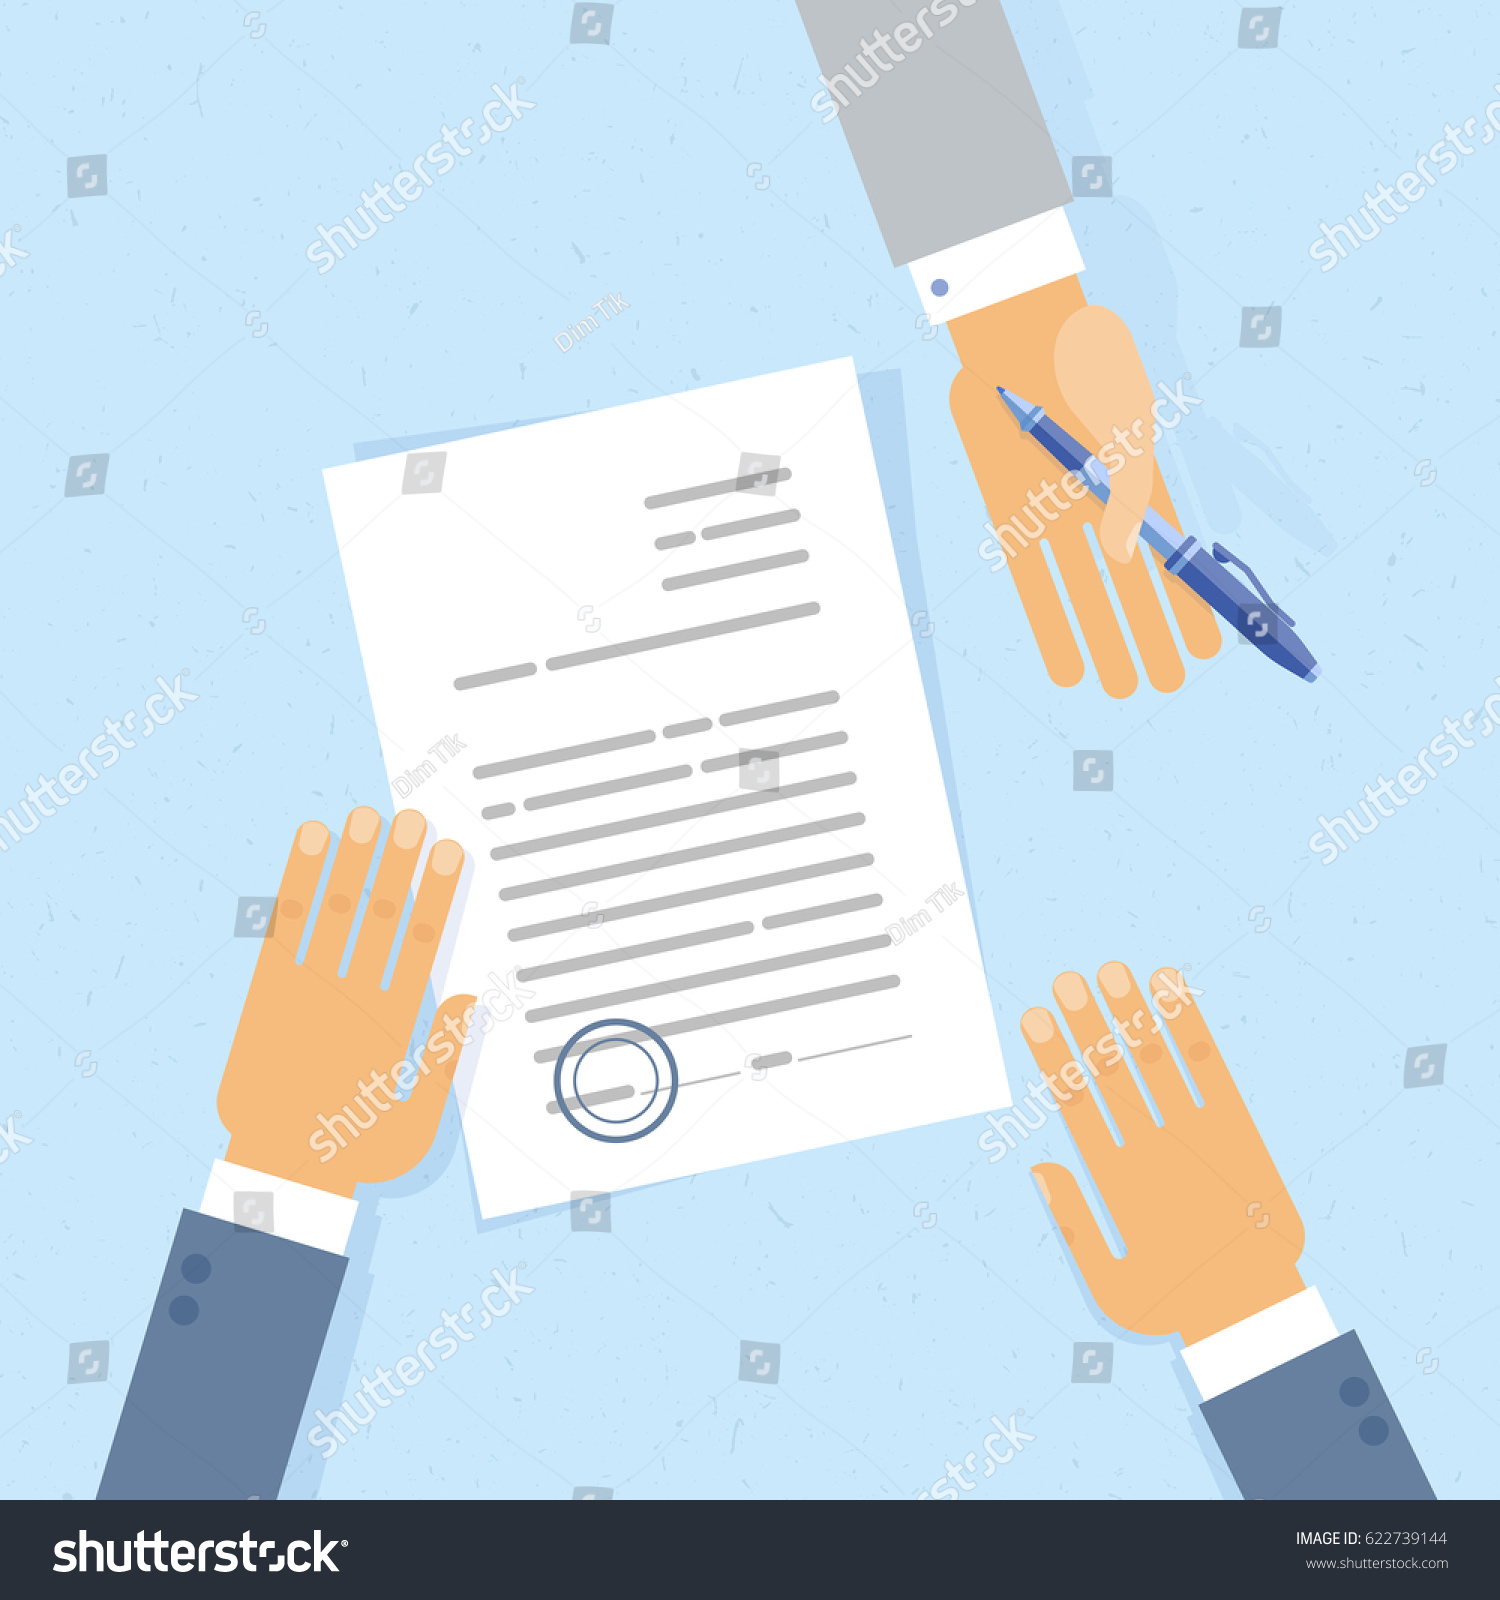 businessman sign a business letter contract or document and somebody offer a pen to - How To Sign A Business Letter